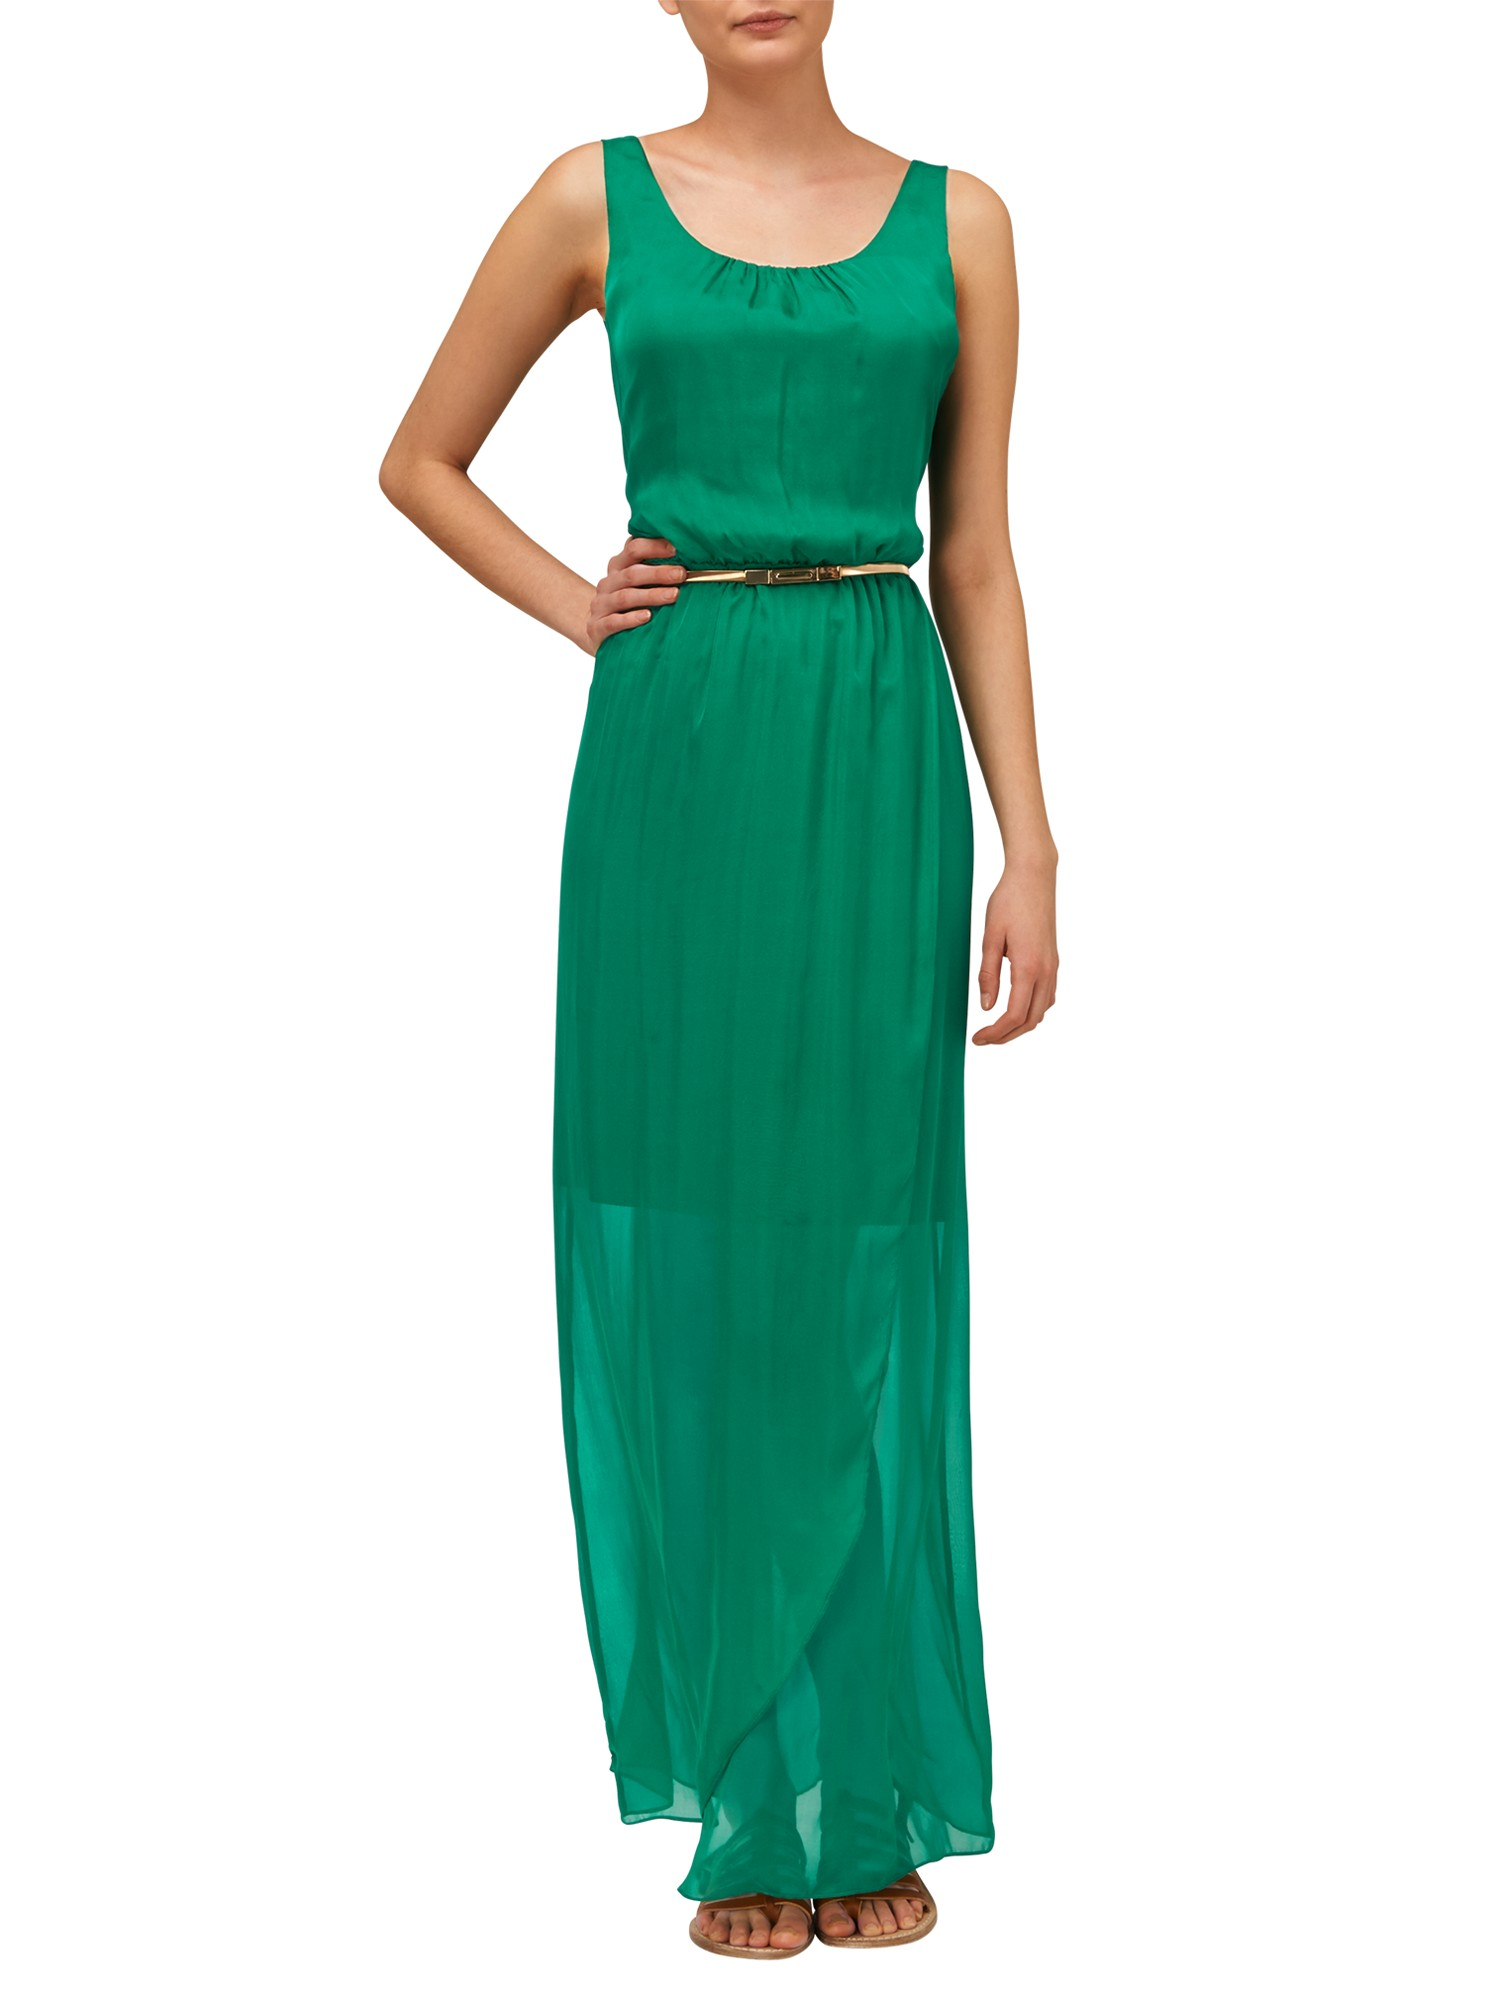 Phase eight green maxi dress